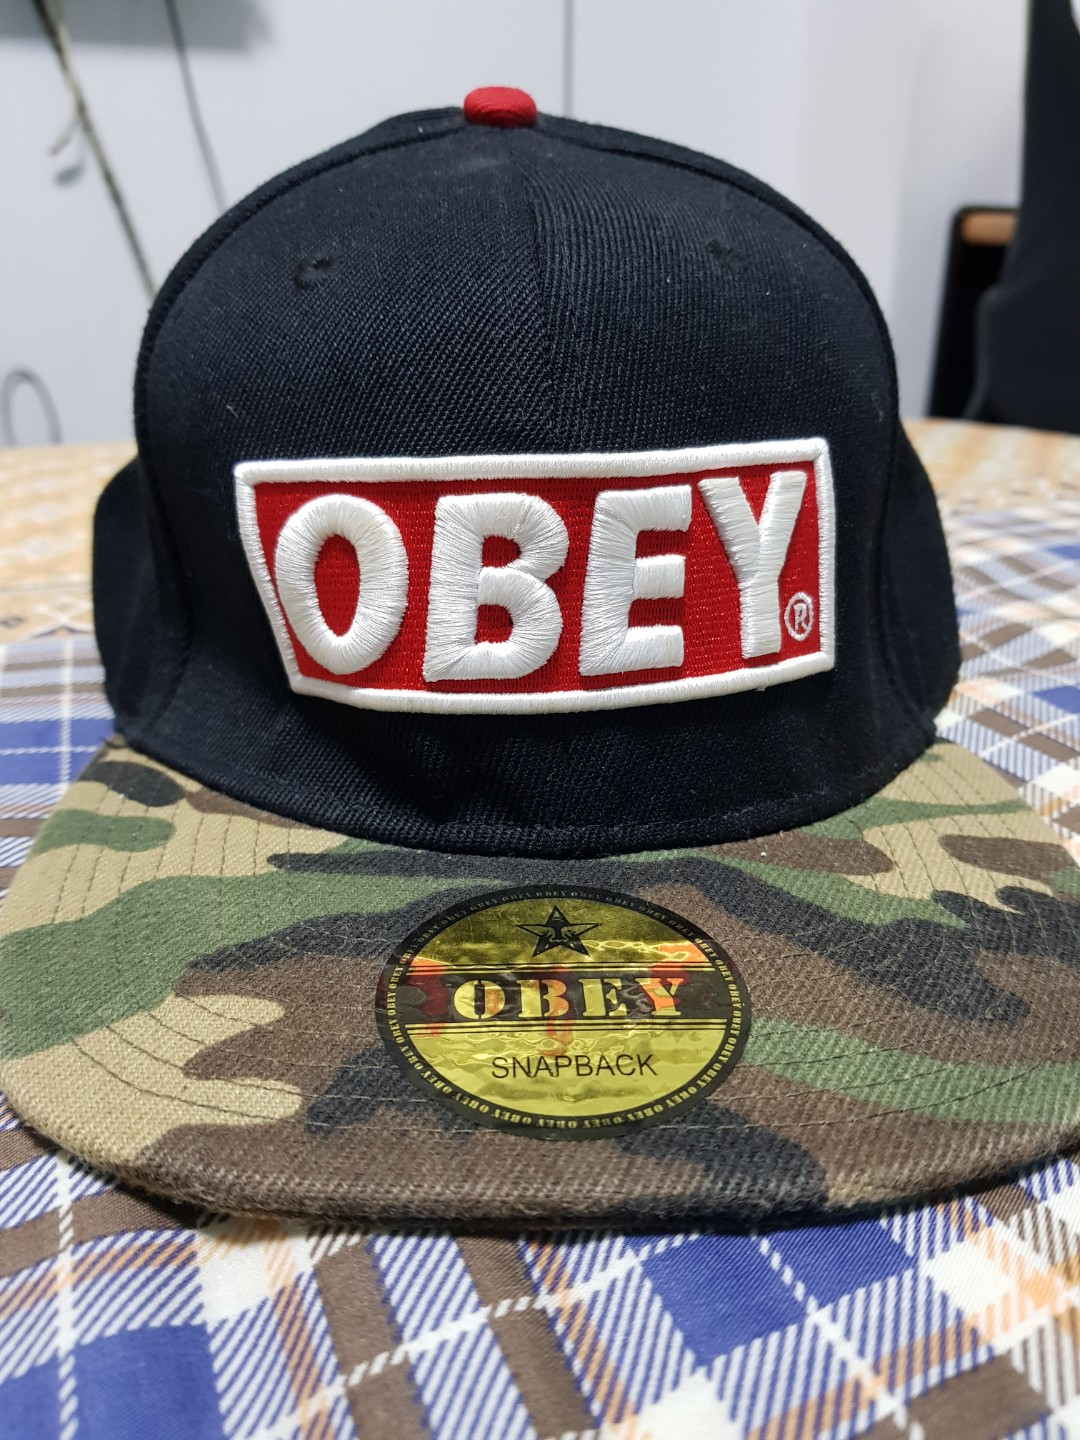 Brand new obey snapback mens fashion clothes others on carousell jpg  1080x1440 Obey snapback 474908d0a544